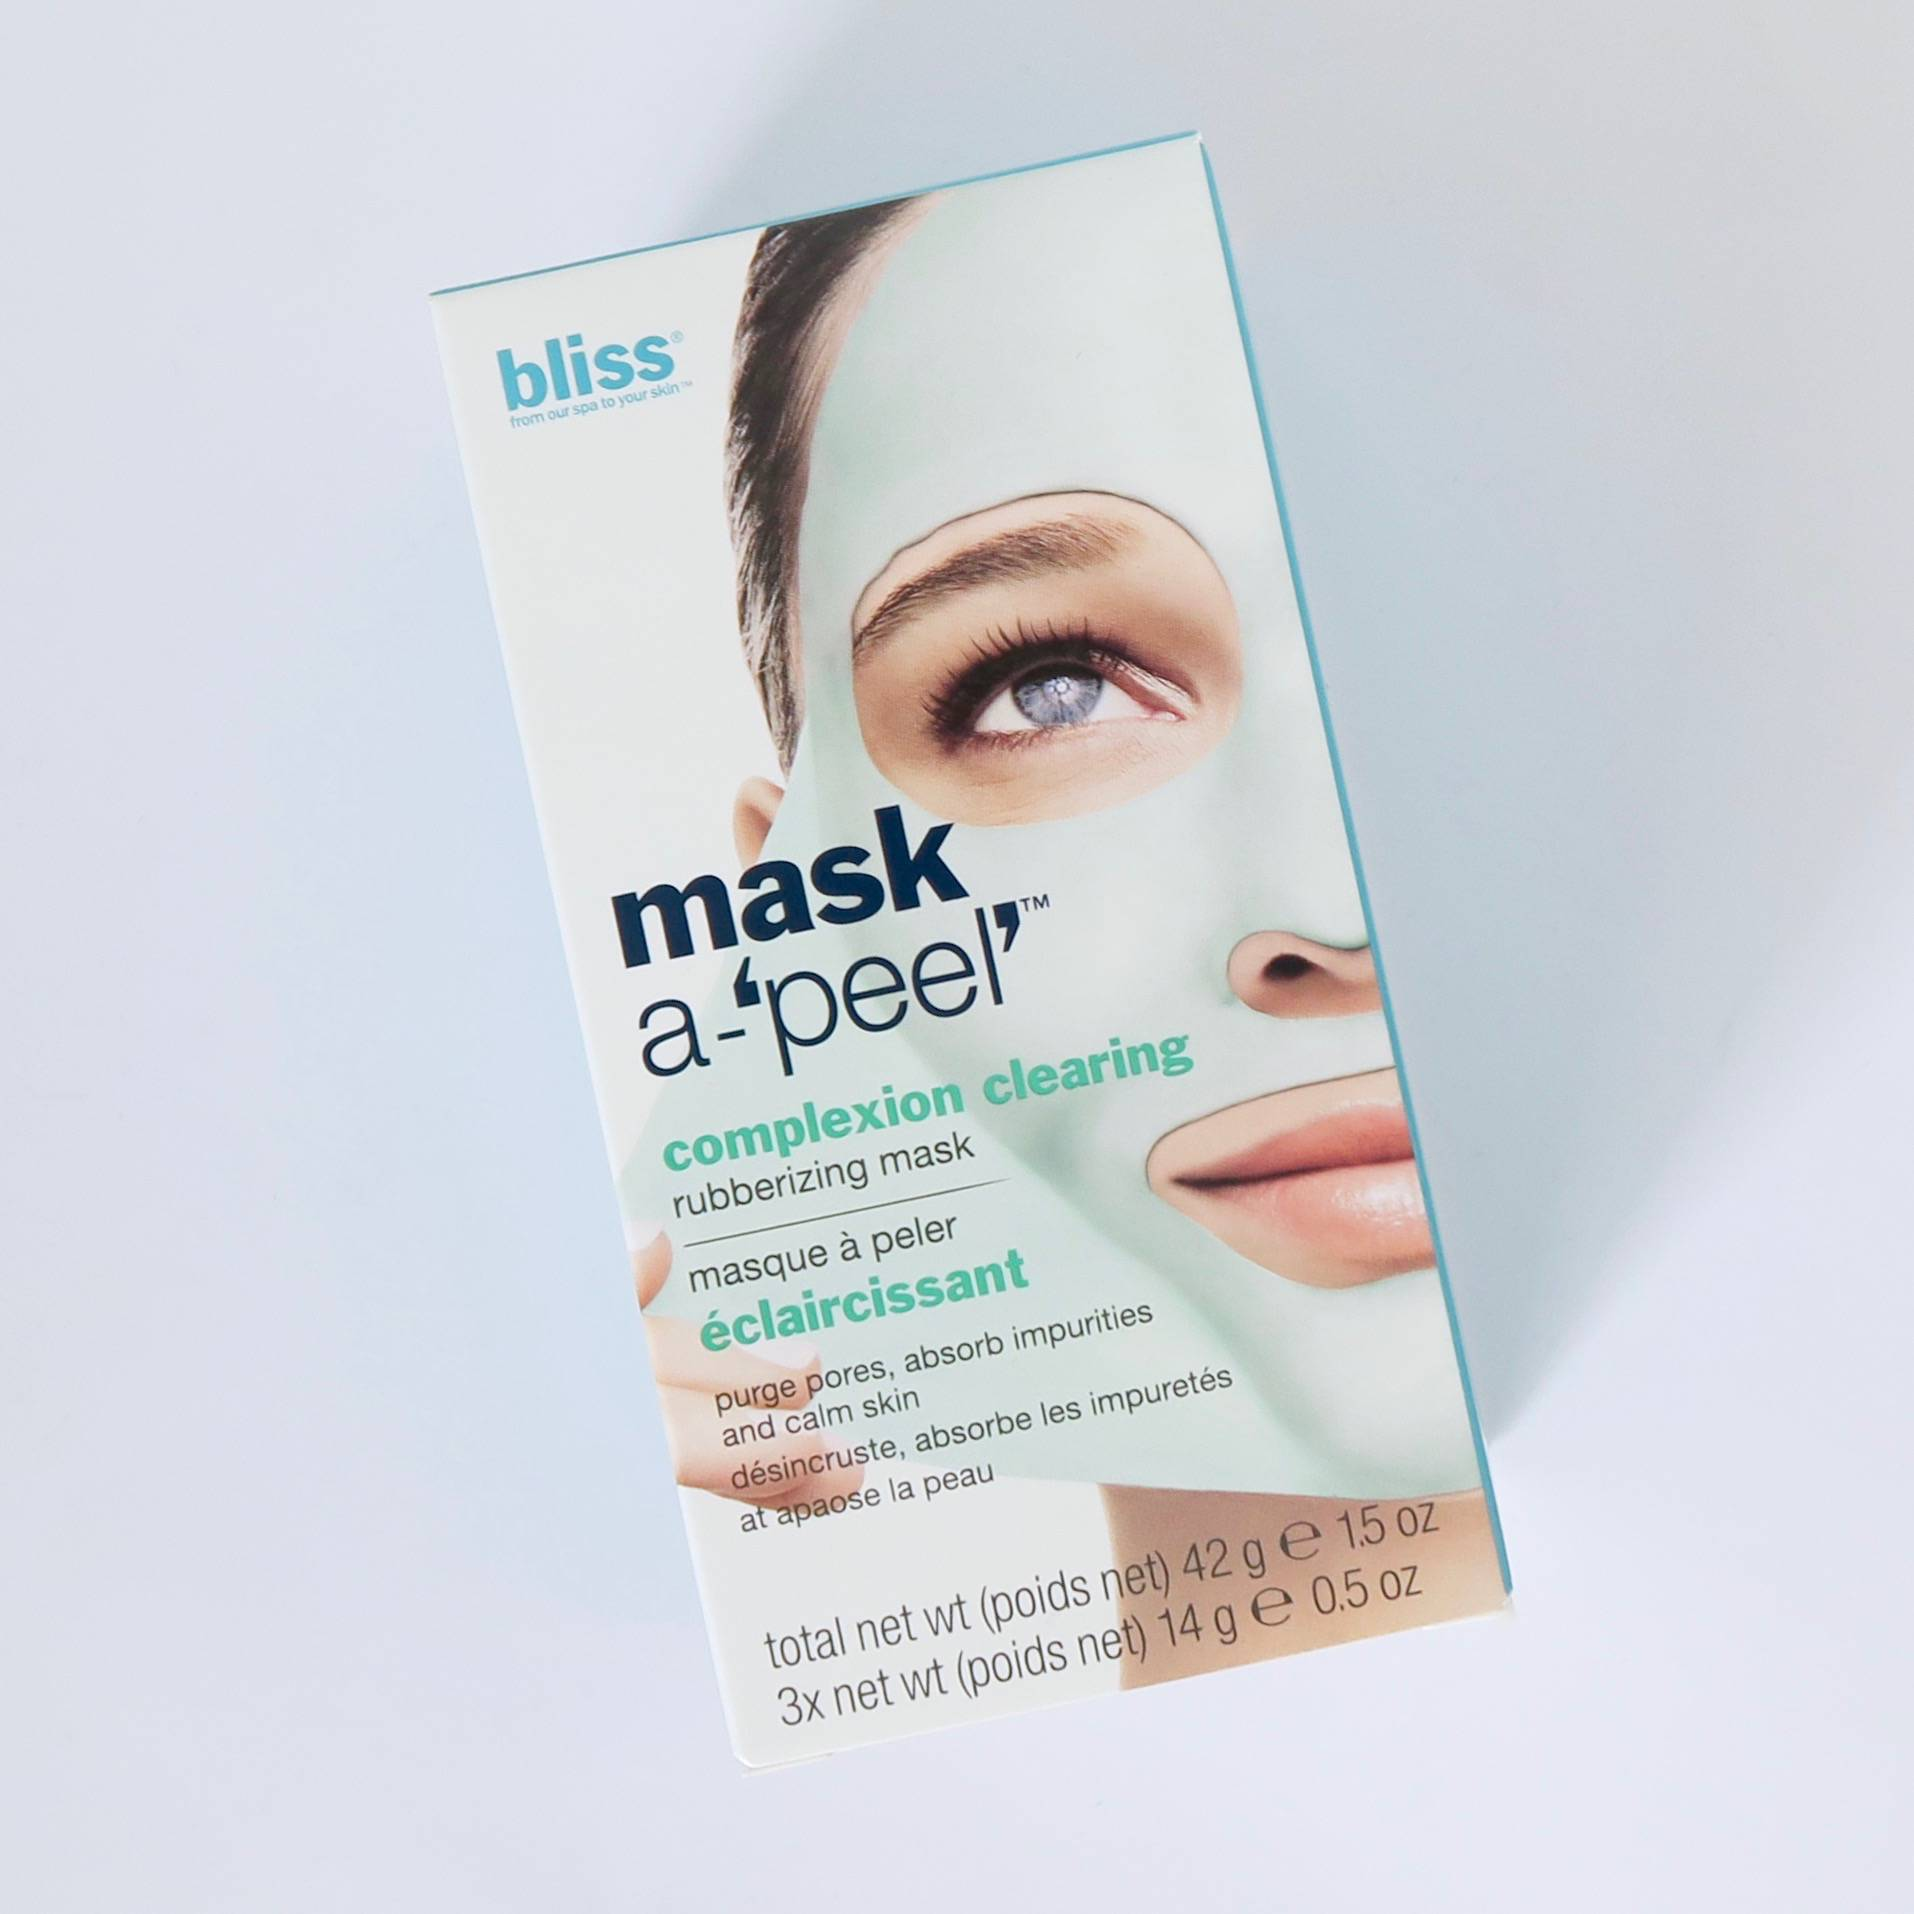 Bliss Mask-A-Peel Rubberised face mask